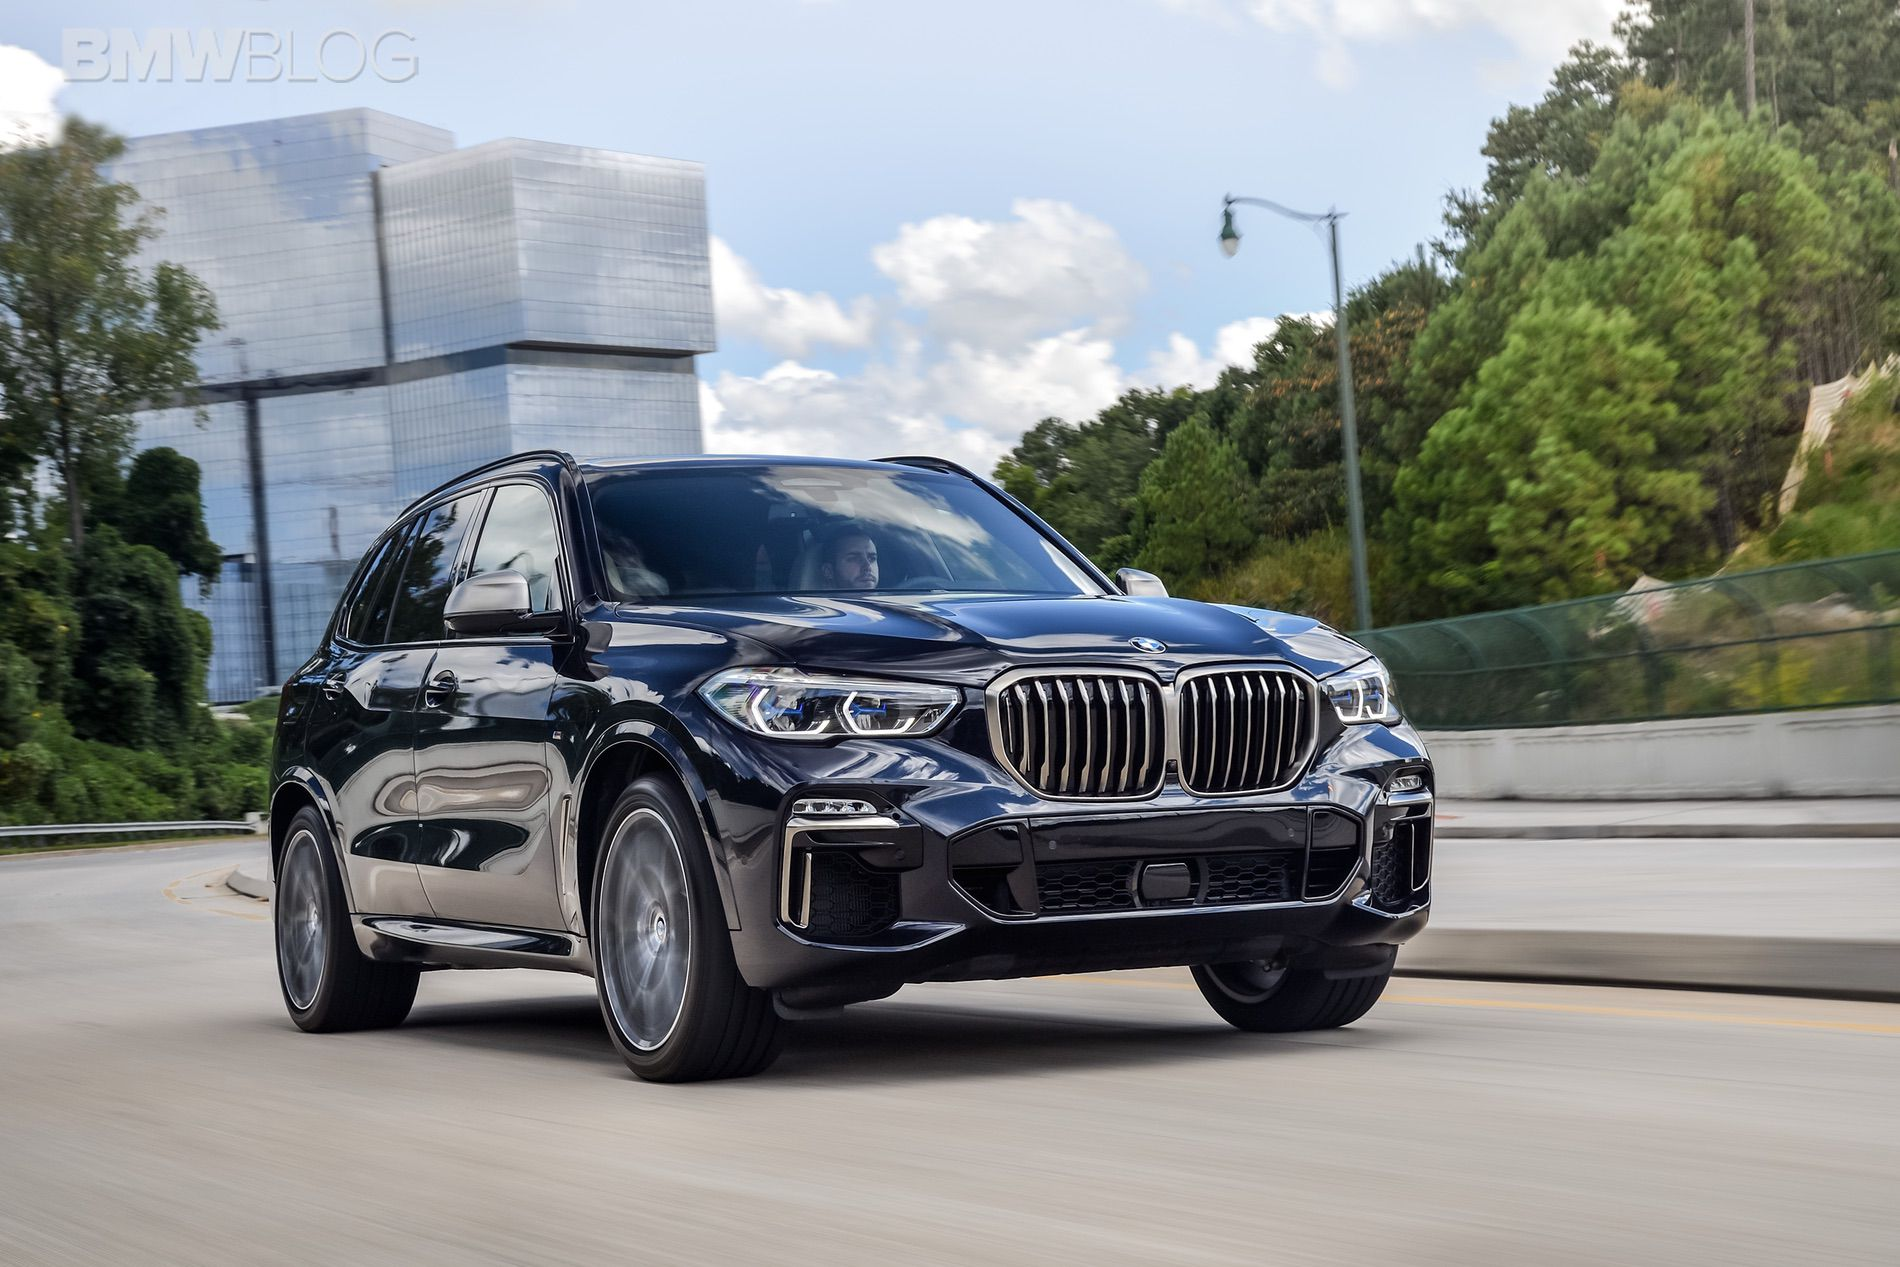 bmw x7 vs bmw x5 photo comparison. Black Bedroom Furniture Sets. Home Design Ideas